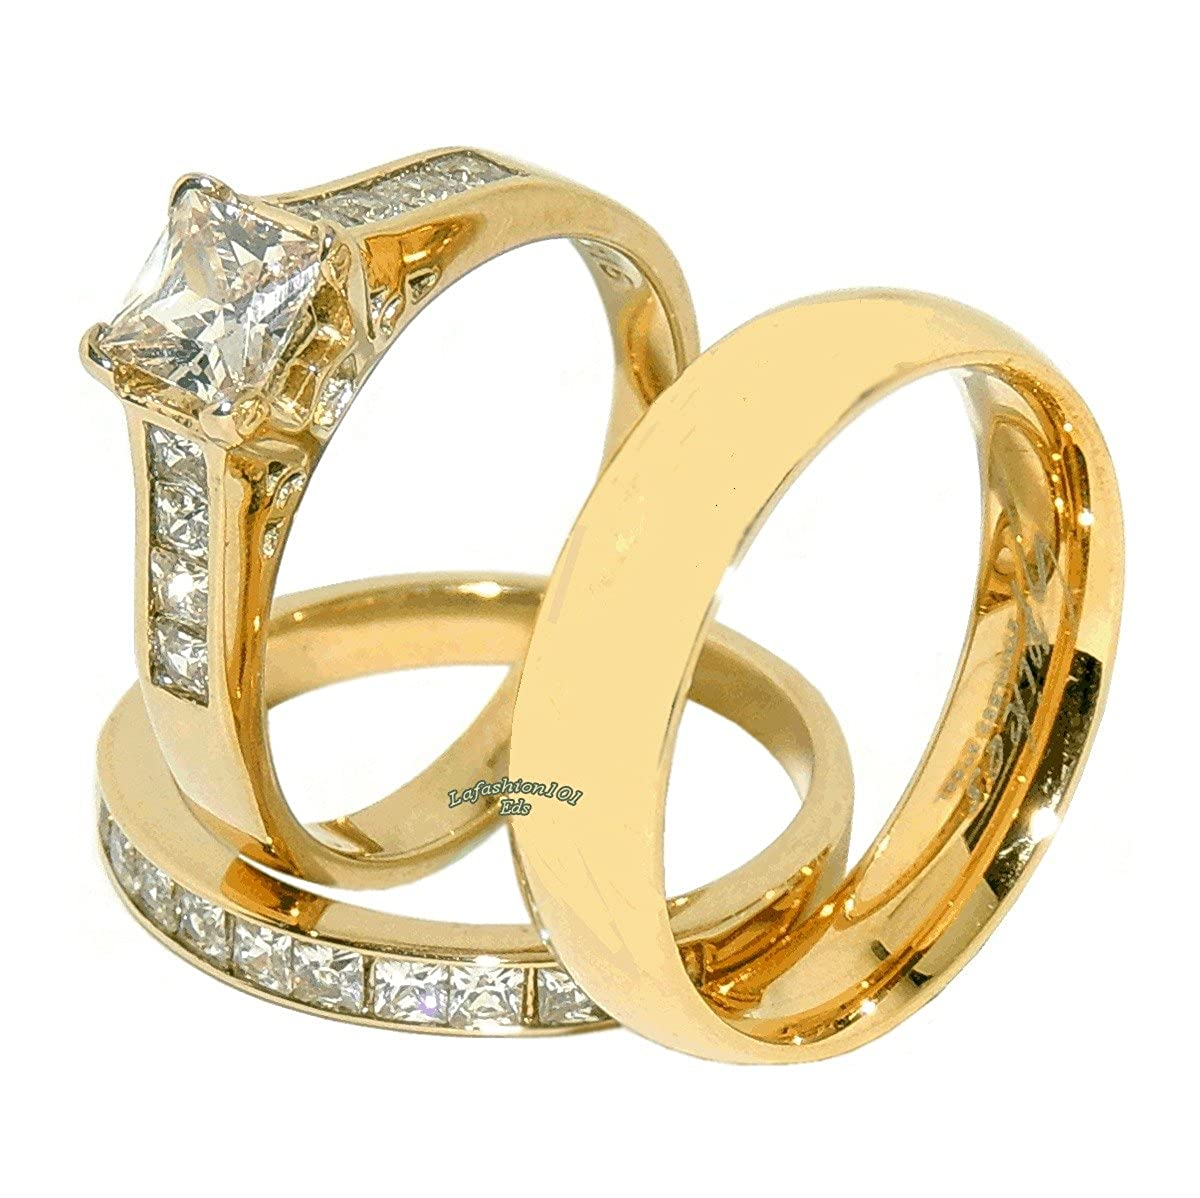 3 PCS Stainless Steel His Flat Band //Hers Princess Cut CZ Engagement Ring Set